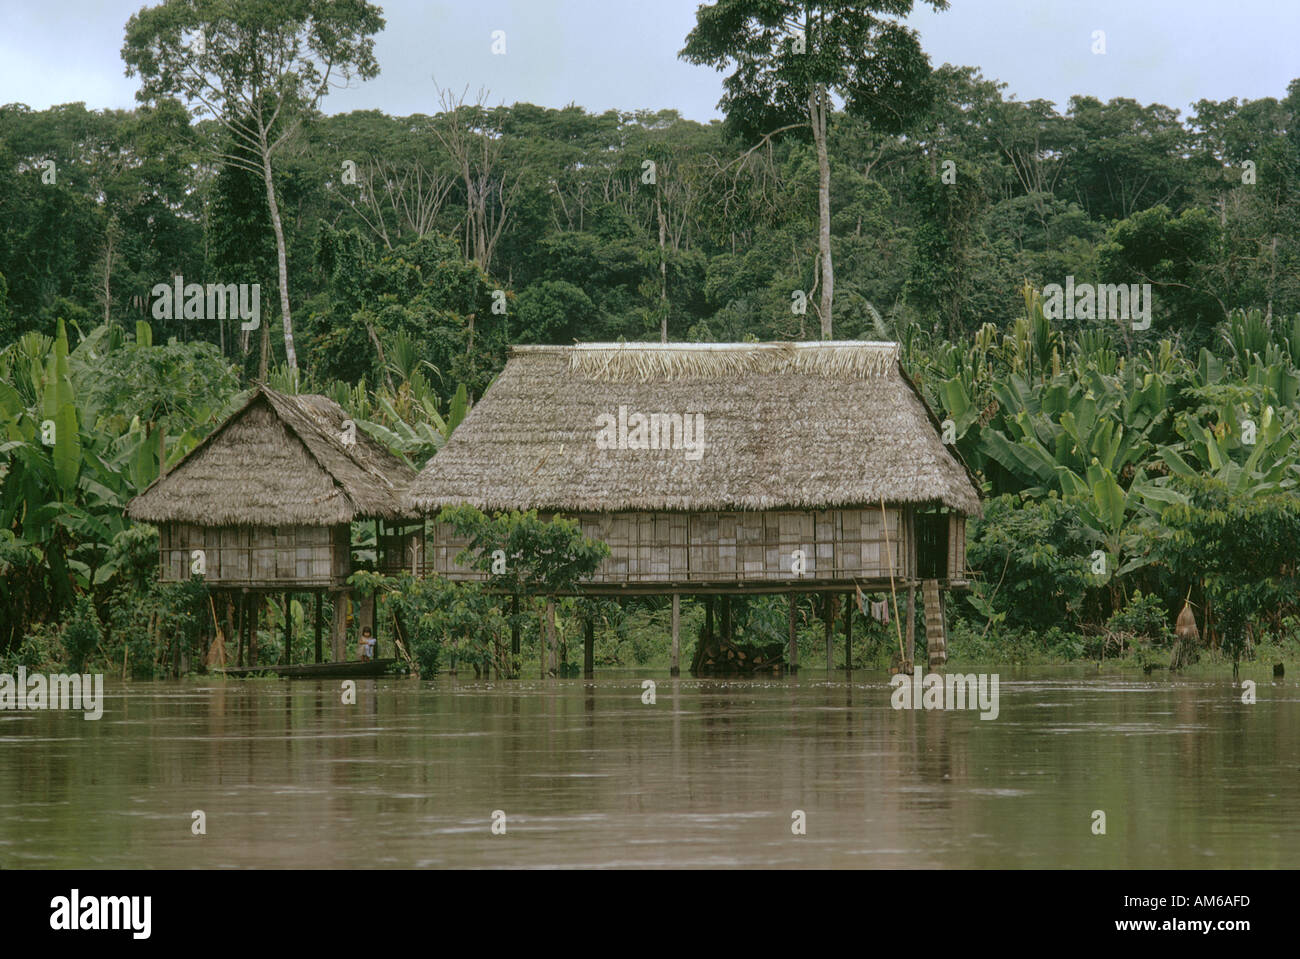 Settlers Hut Built On Stilts On Amazon River Bank Tributary In Peru